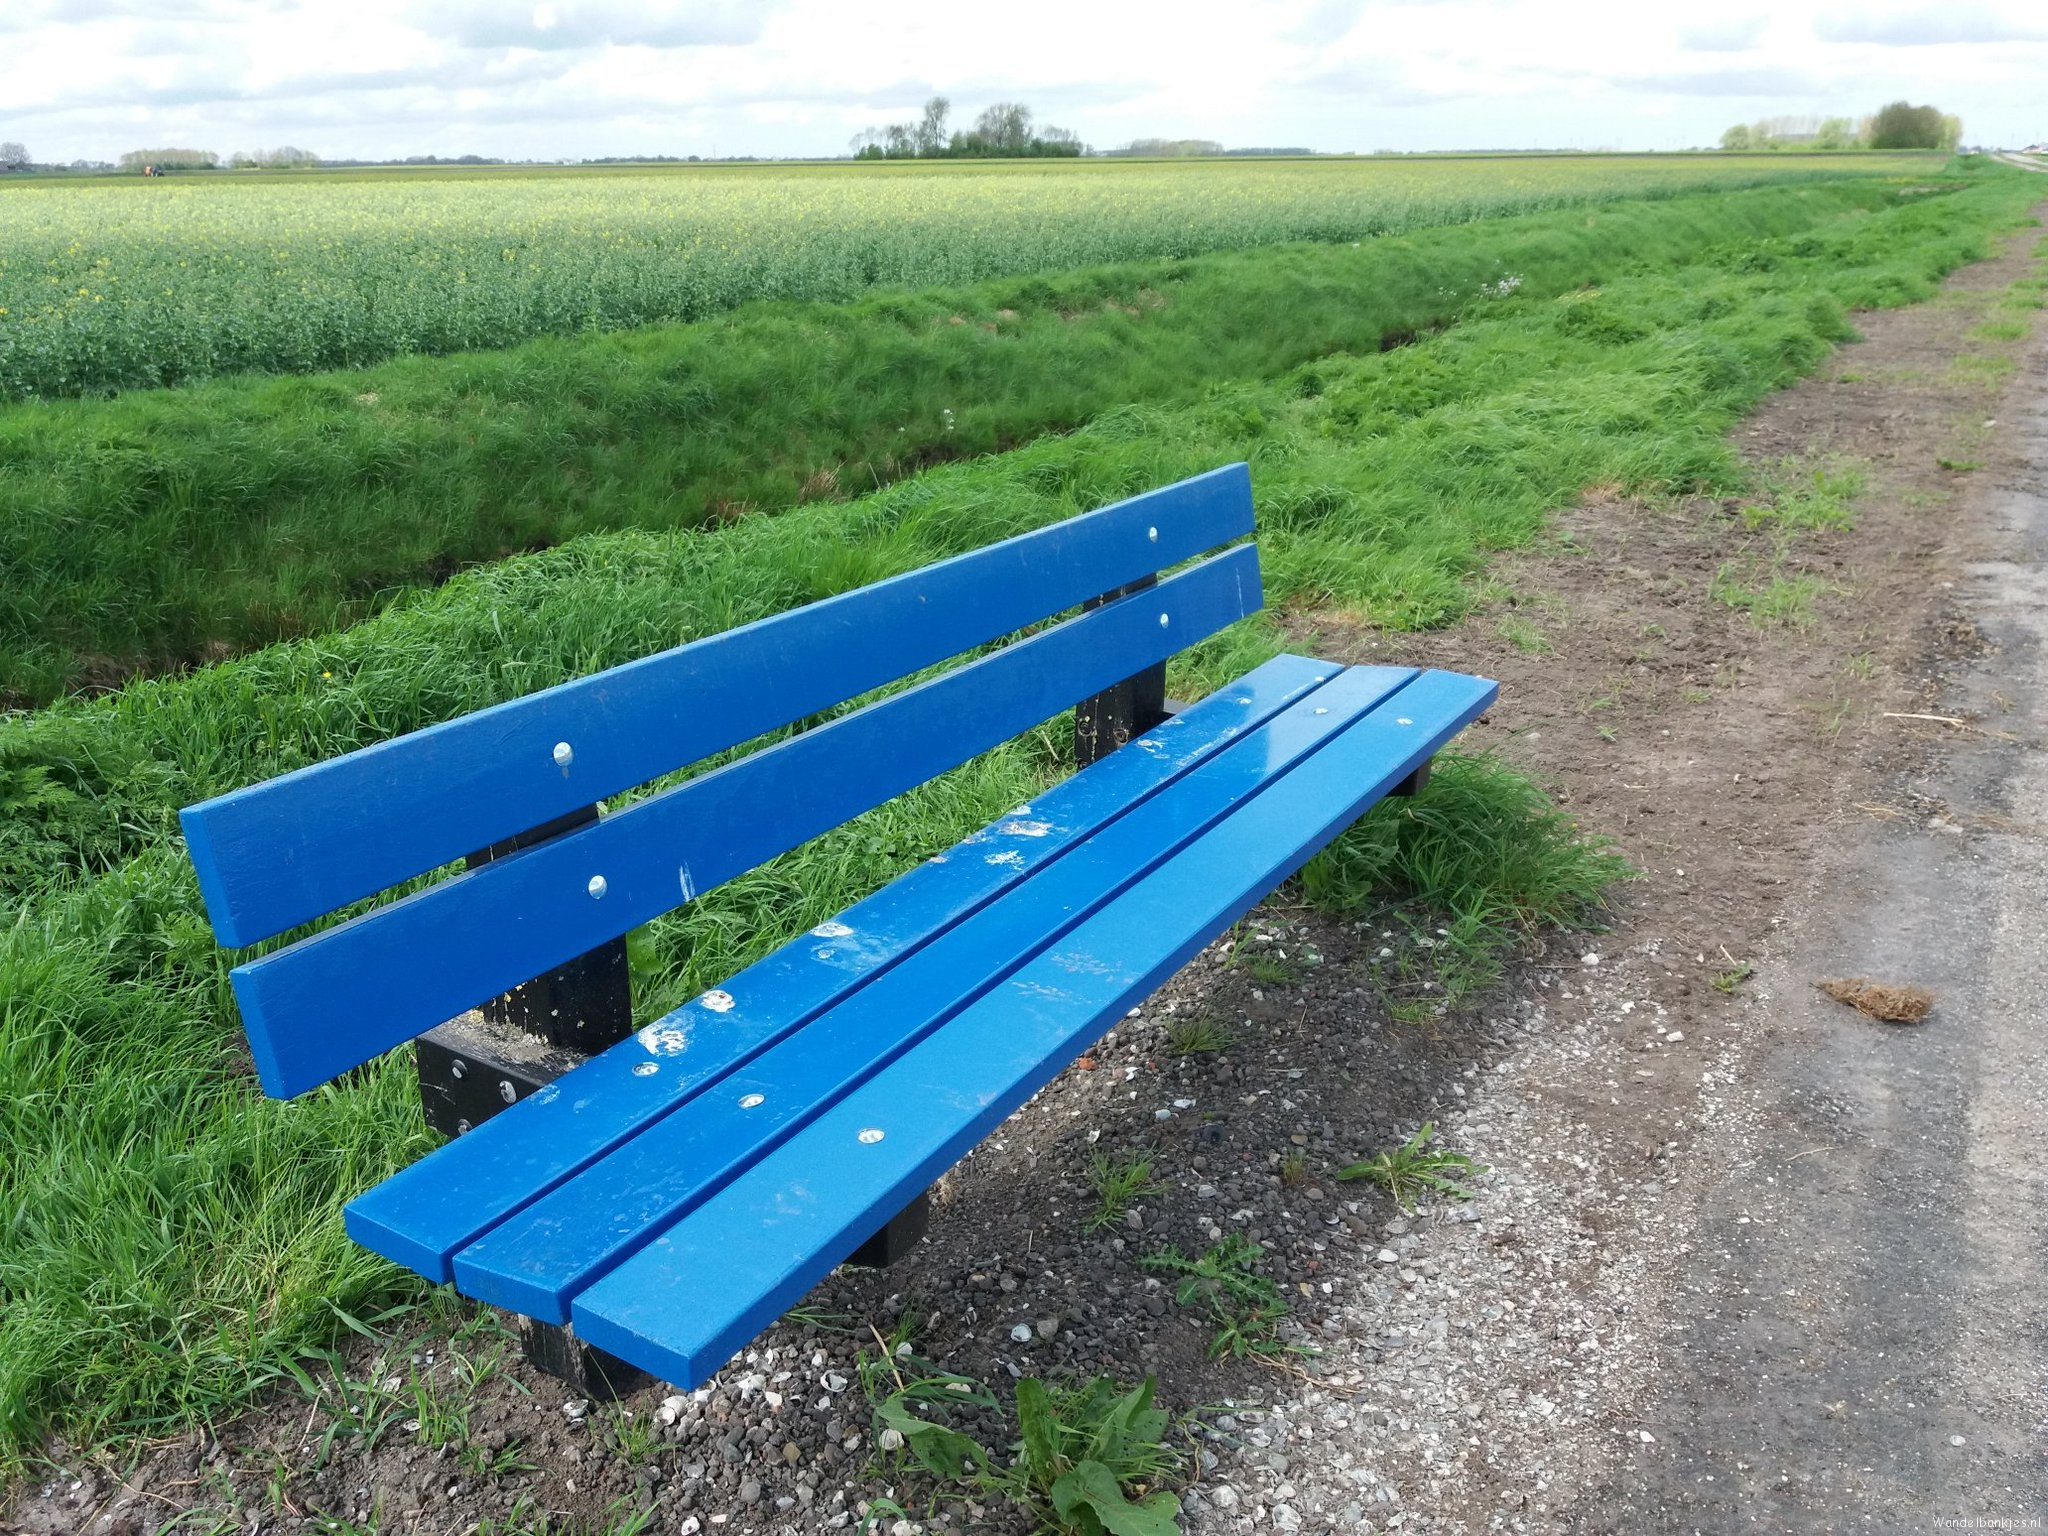 rt-walking with war-nieuwlandseweg-midwoldaoldambtoost-groningenwith-budding-rapeseed-in-the-background-walking benches-https-tc